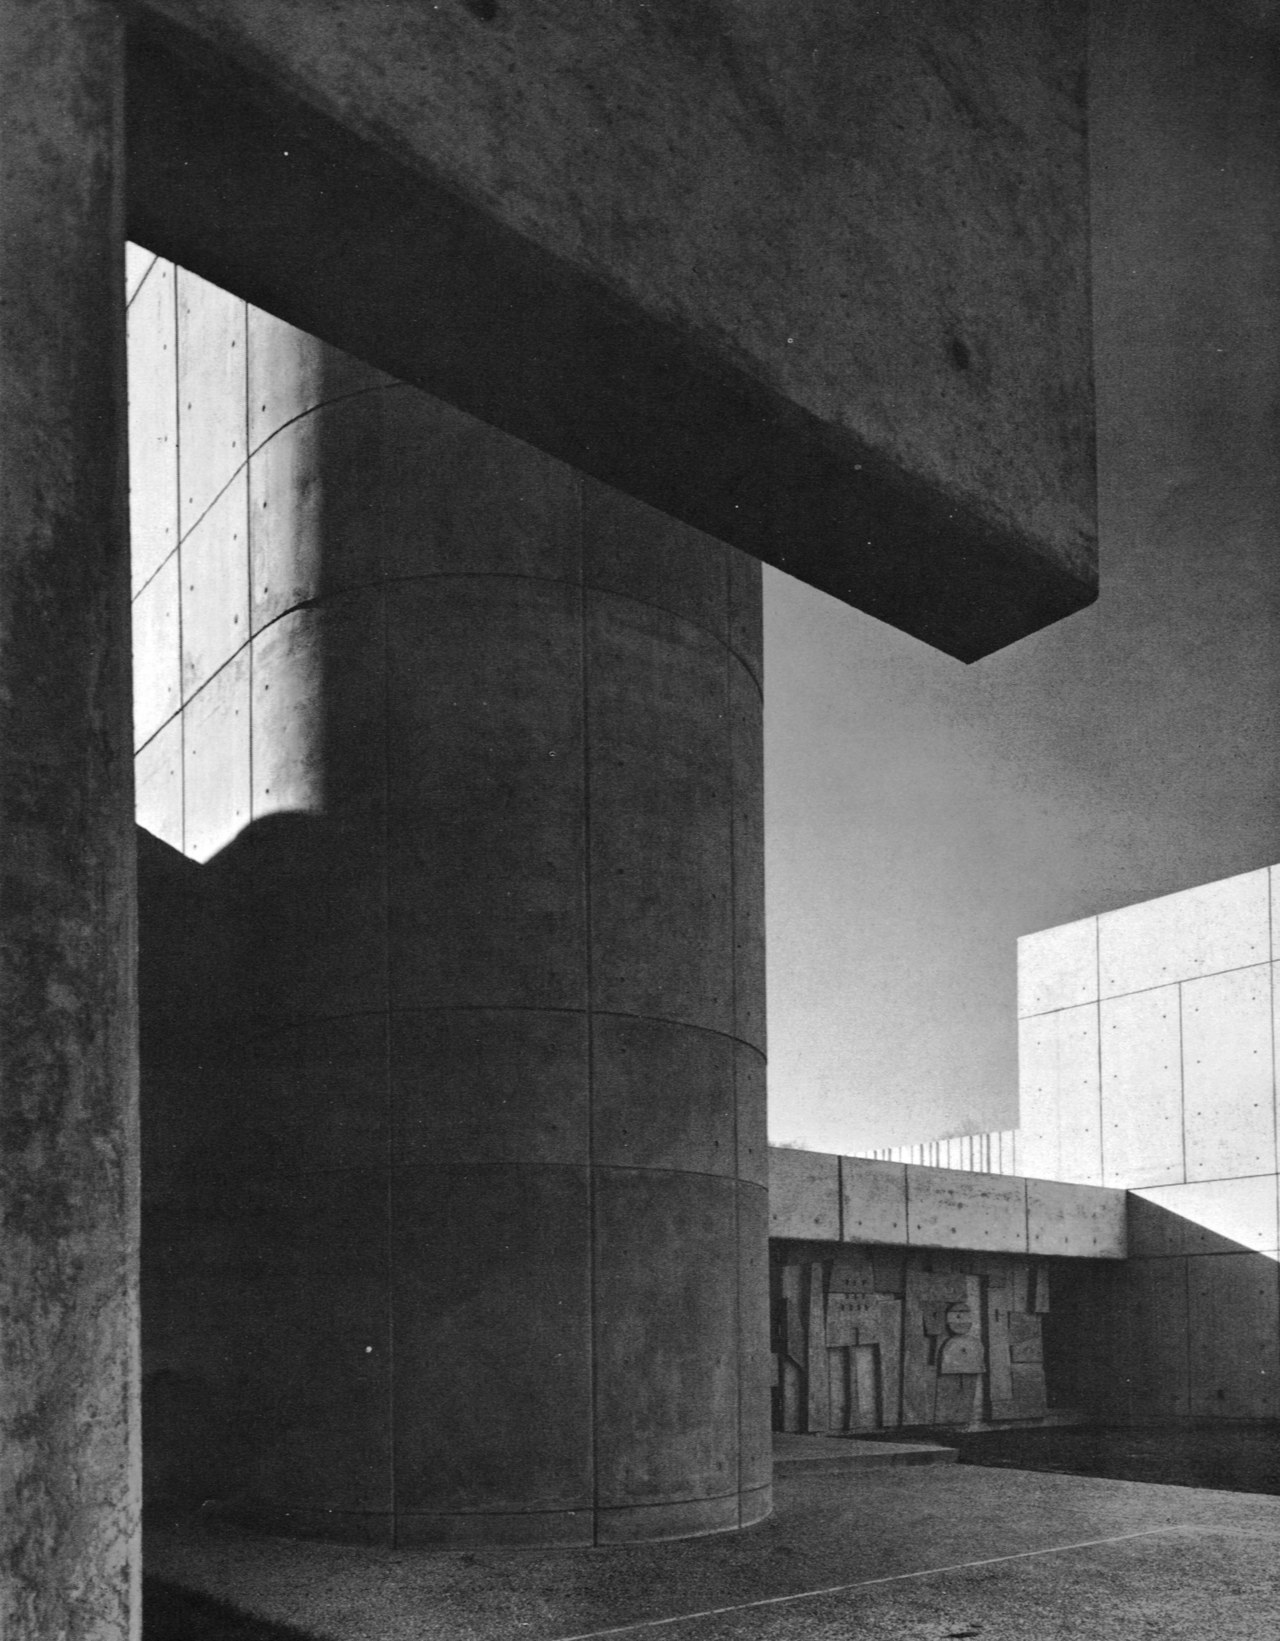 YMCA Community Center, Roxbury, Massachusetts, 1960s (The Architect's Collaborative)